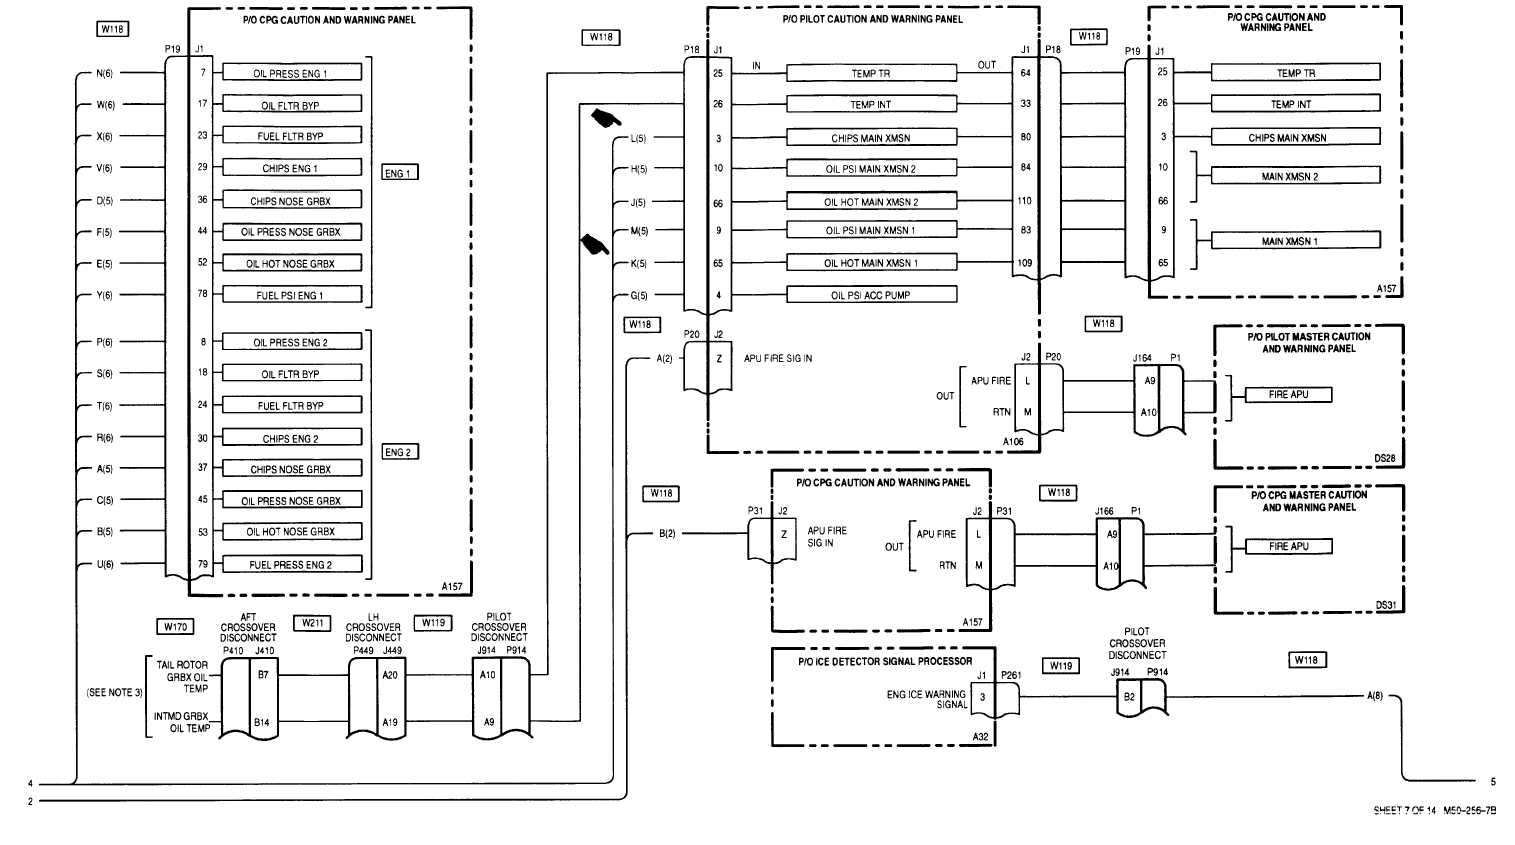 Telephone Circuit Schematic, Telephone, Free Engine Image